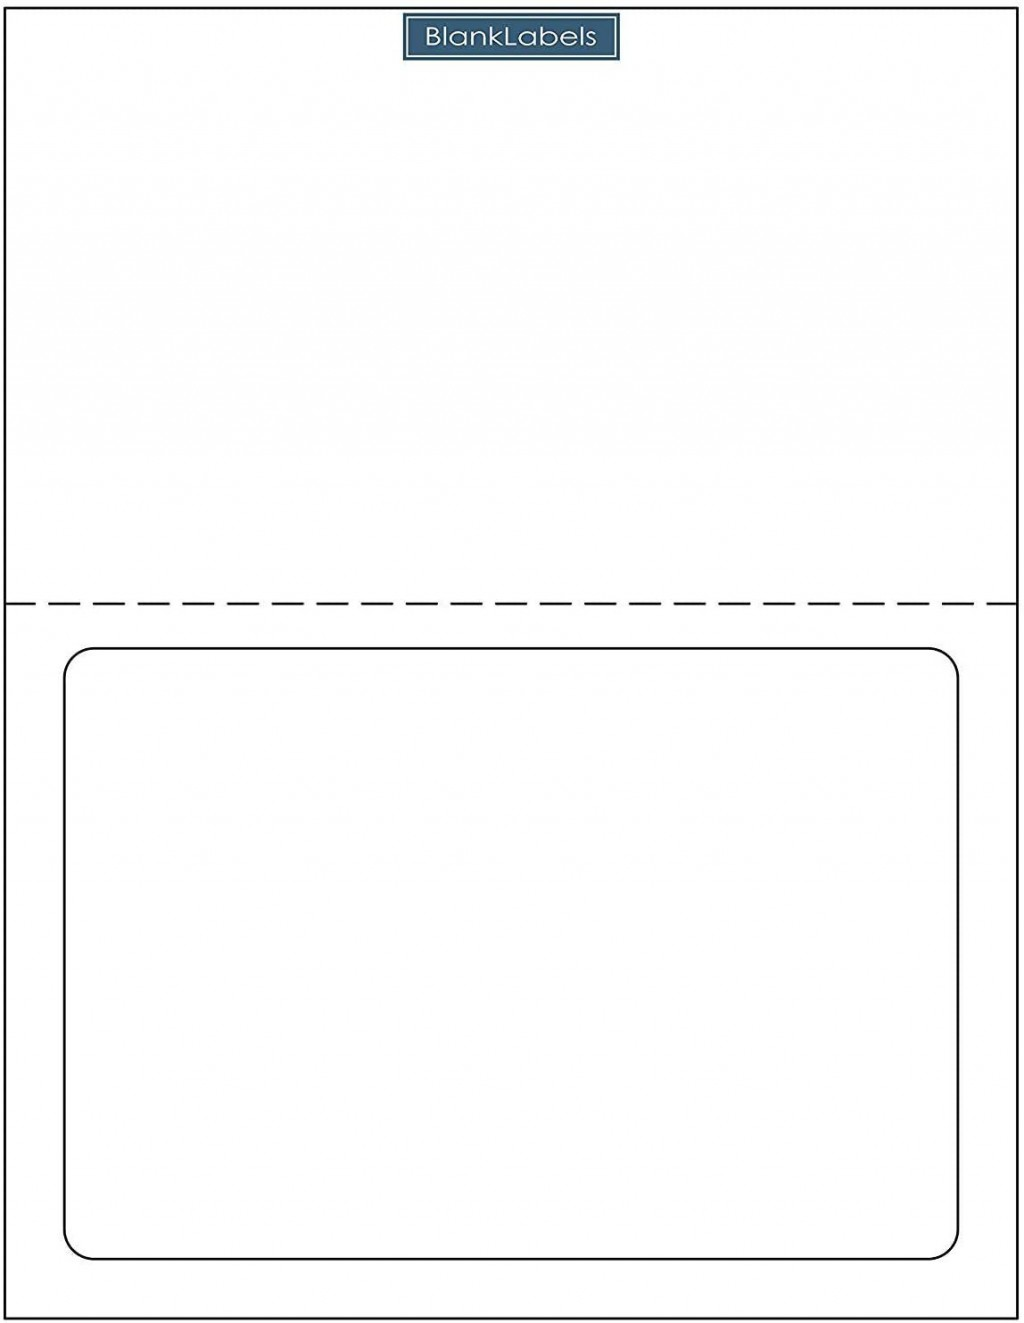 004 Impressive Blank Shipping Label Template High Def  Word Free PrintableLarge